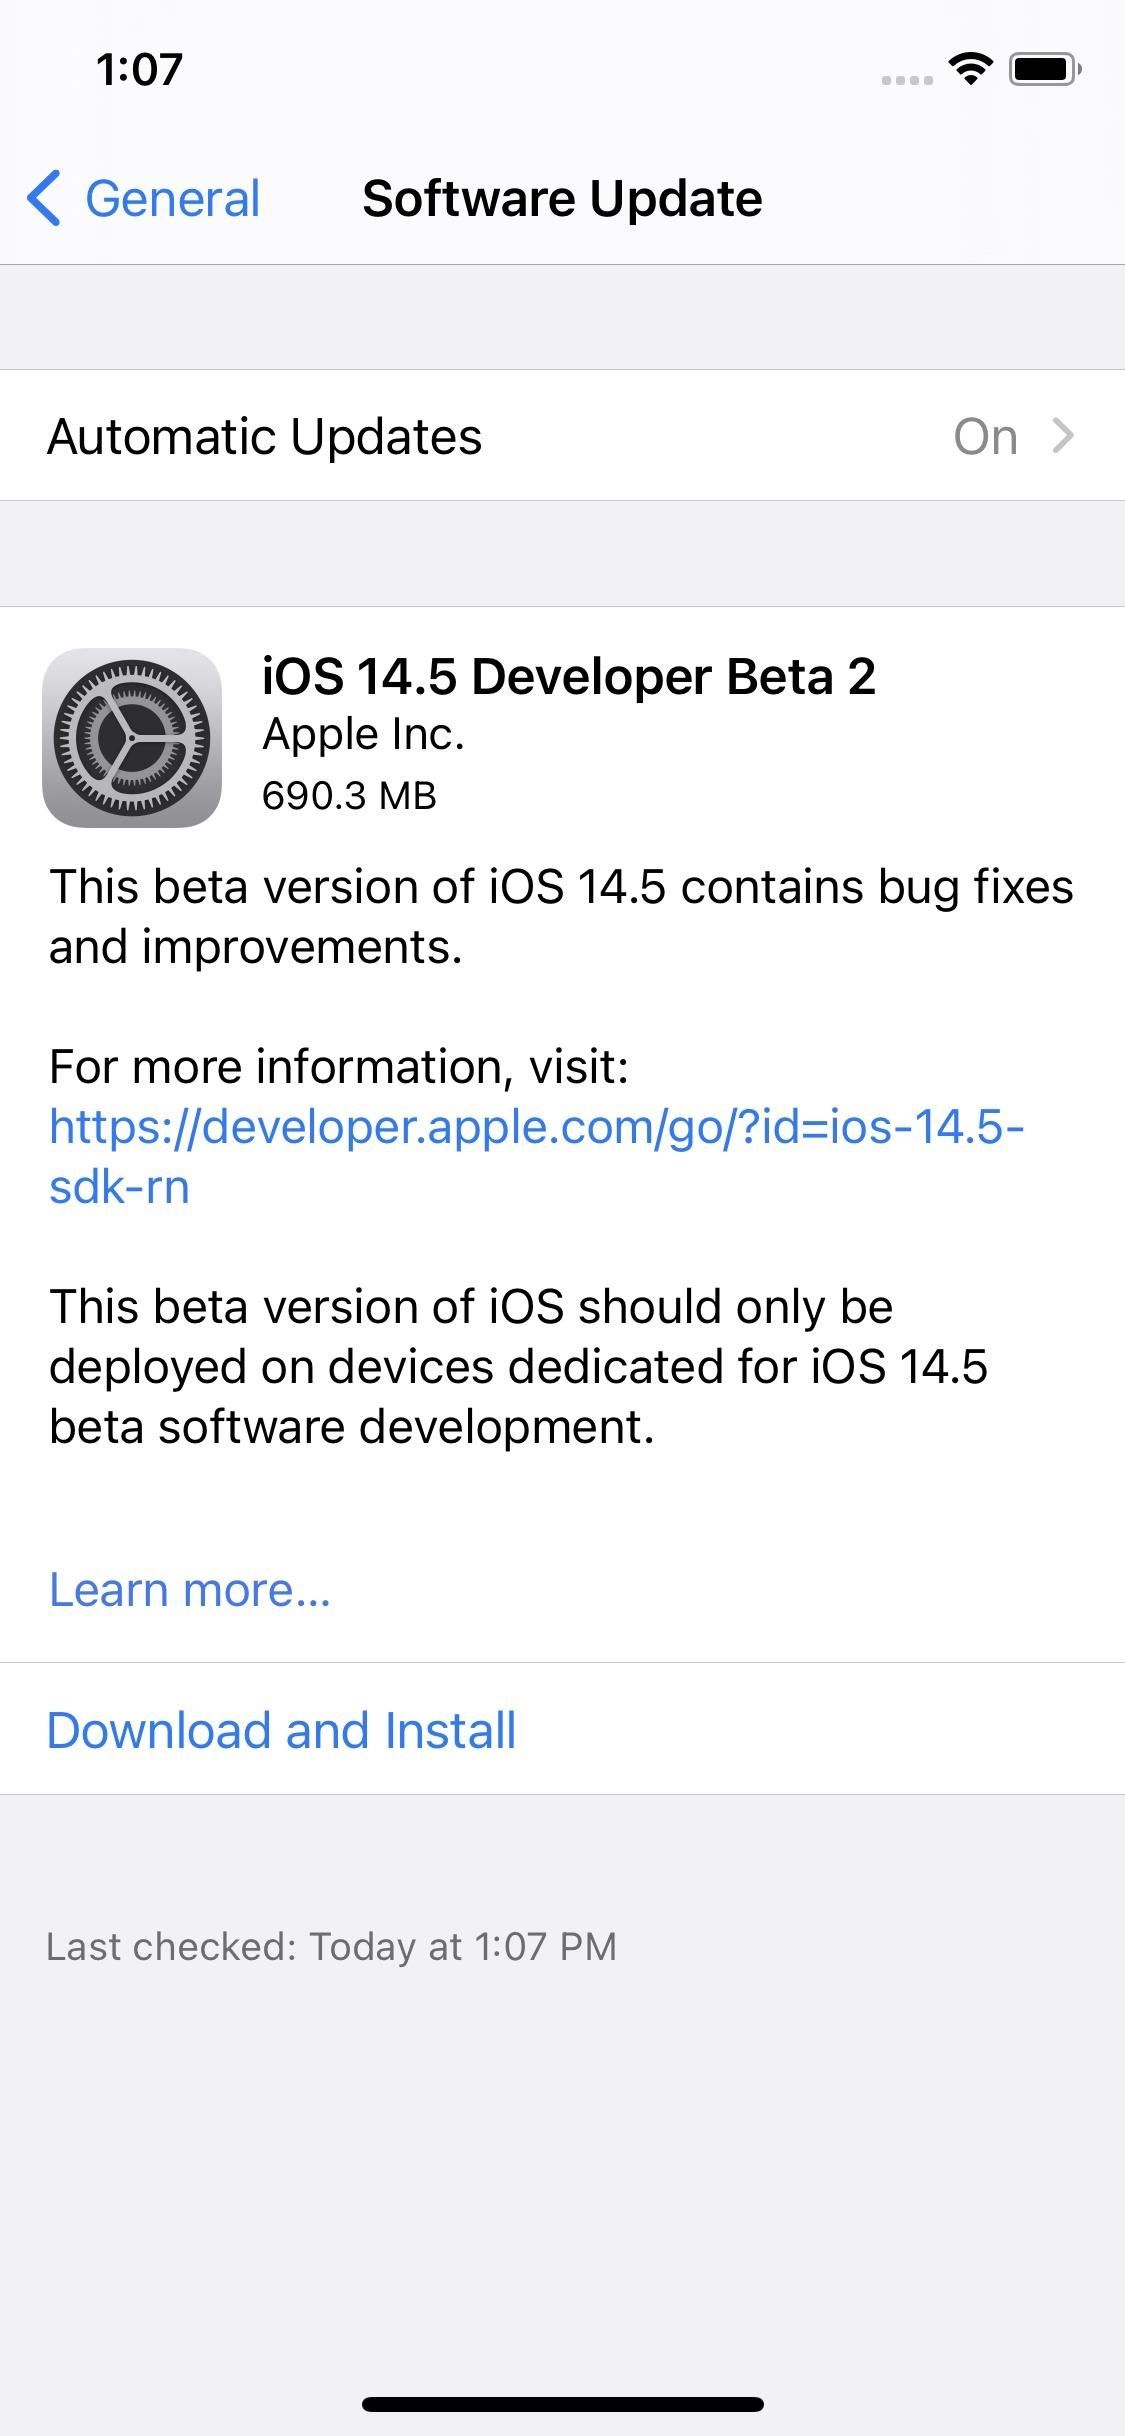 Apple releases iOS 14.5 Developer Beta 2 for iPhone, adds new microphone privacy feature for select iPads